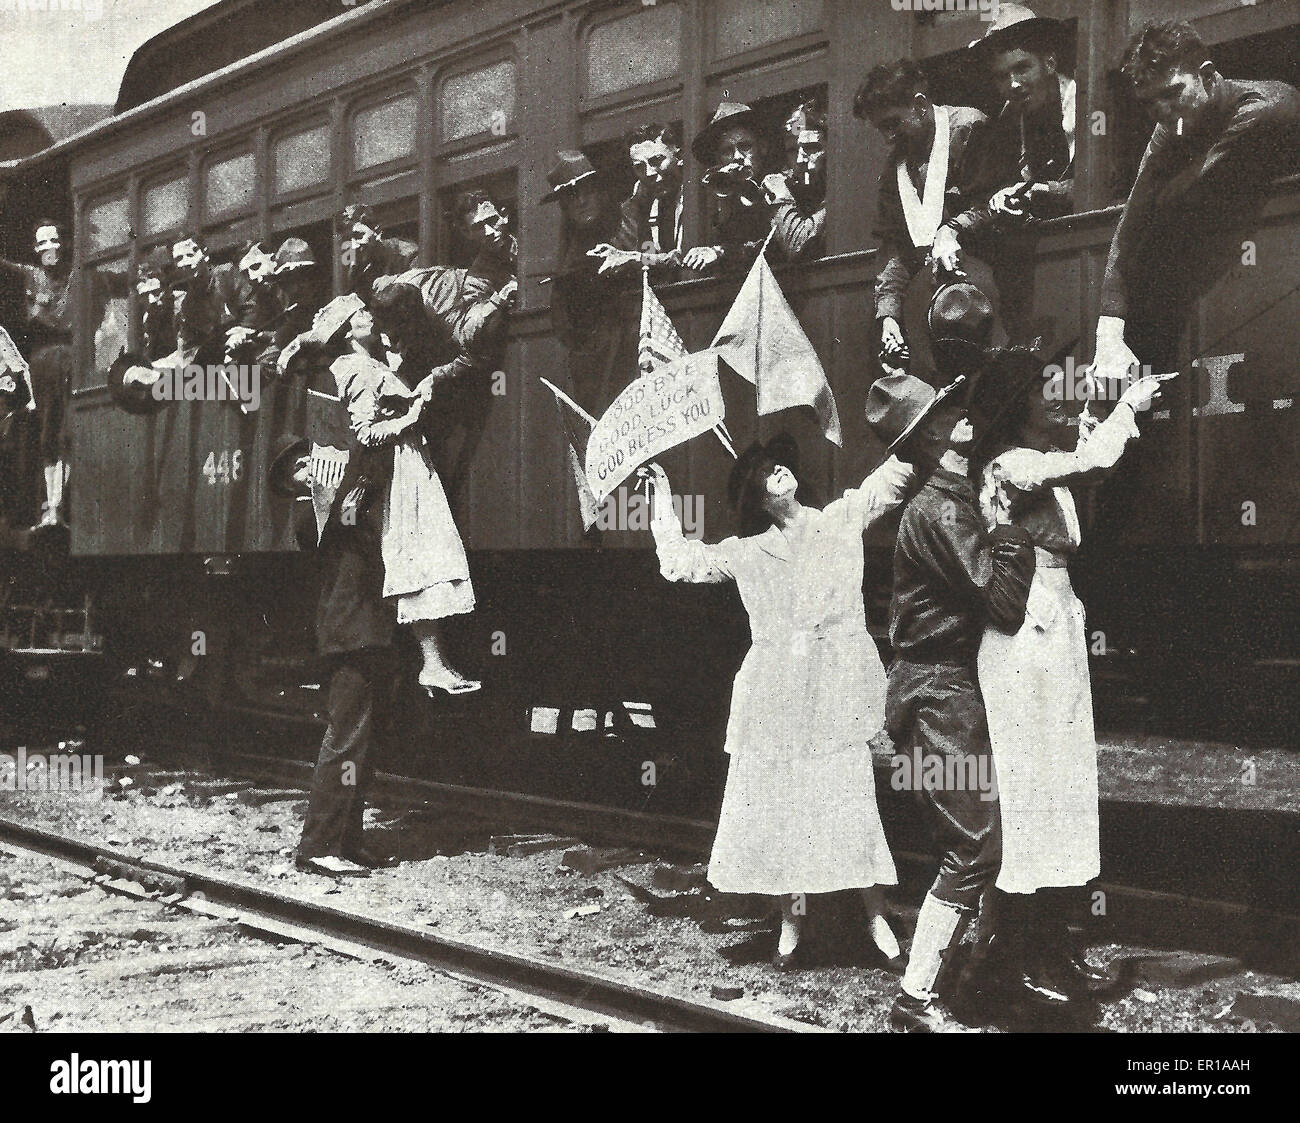 The Fighting Sixty Ninth Off to camp - A last goodbye to sweethearts and wives as the train pulls out of the station. - Stock Image